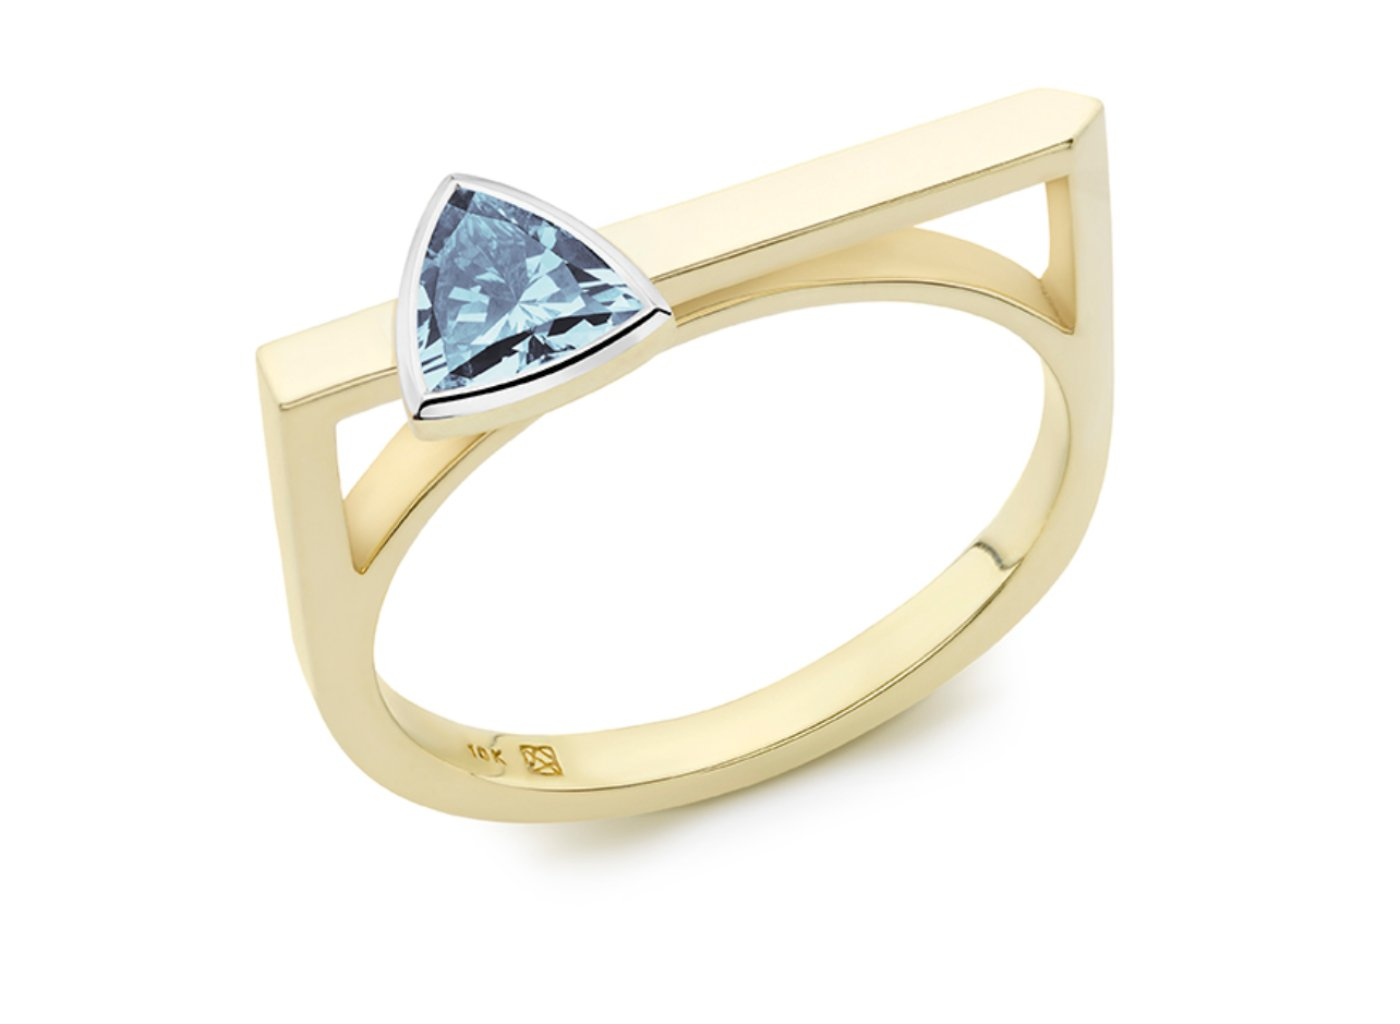 Side view of Trillion linear 3/8 carat ring with blue diamond